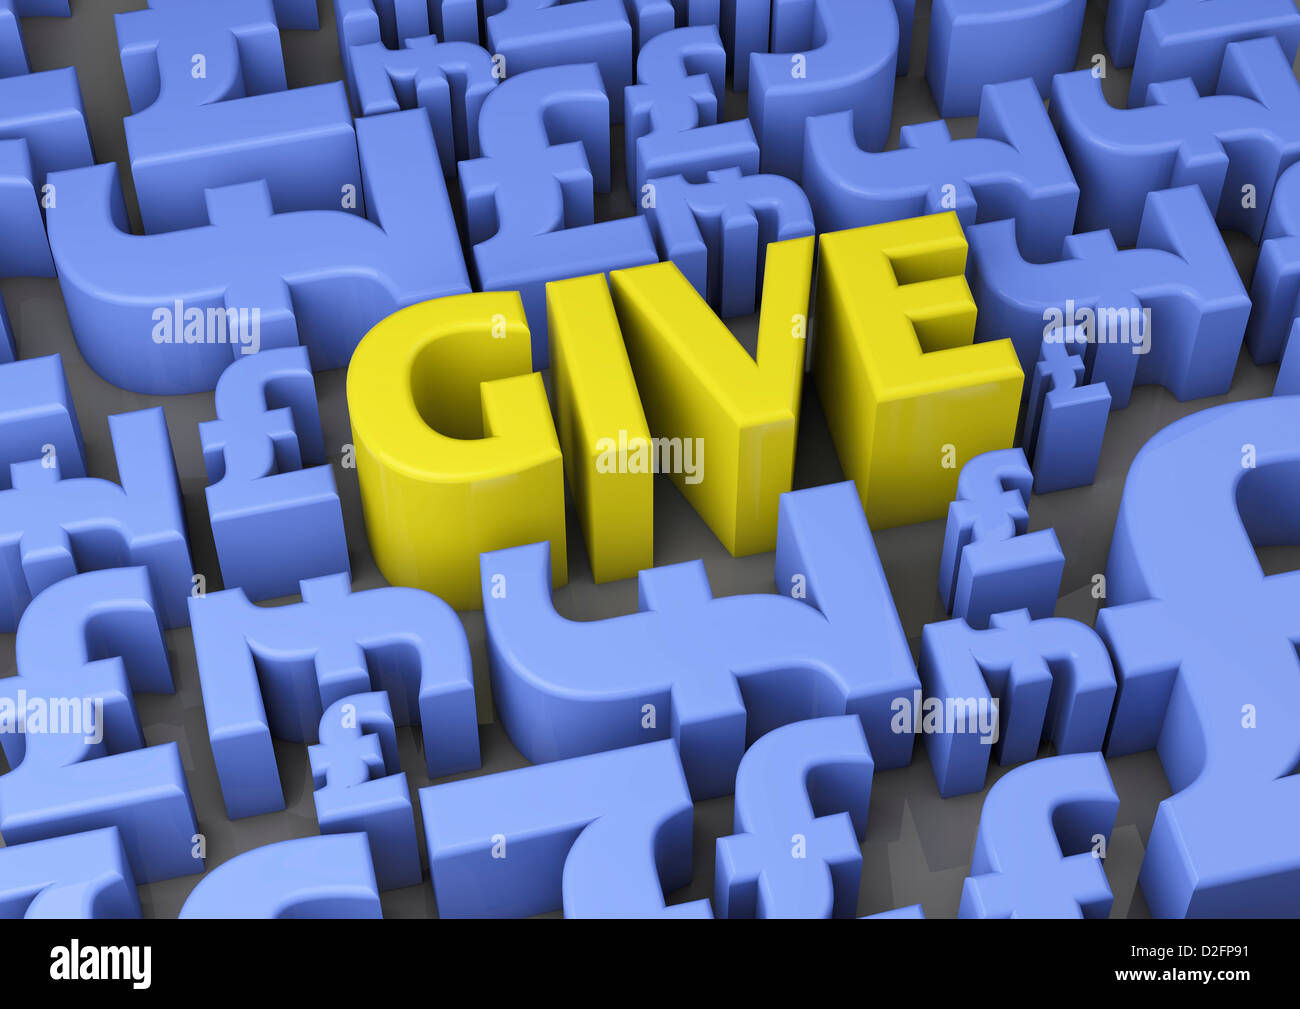 'GIVE' surrounded by British pound sterling symbols - Charity concept - Stock Image